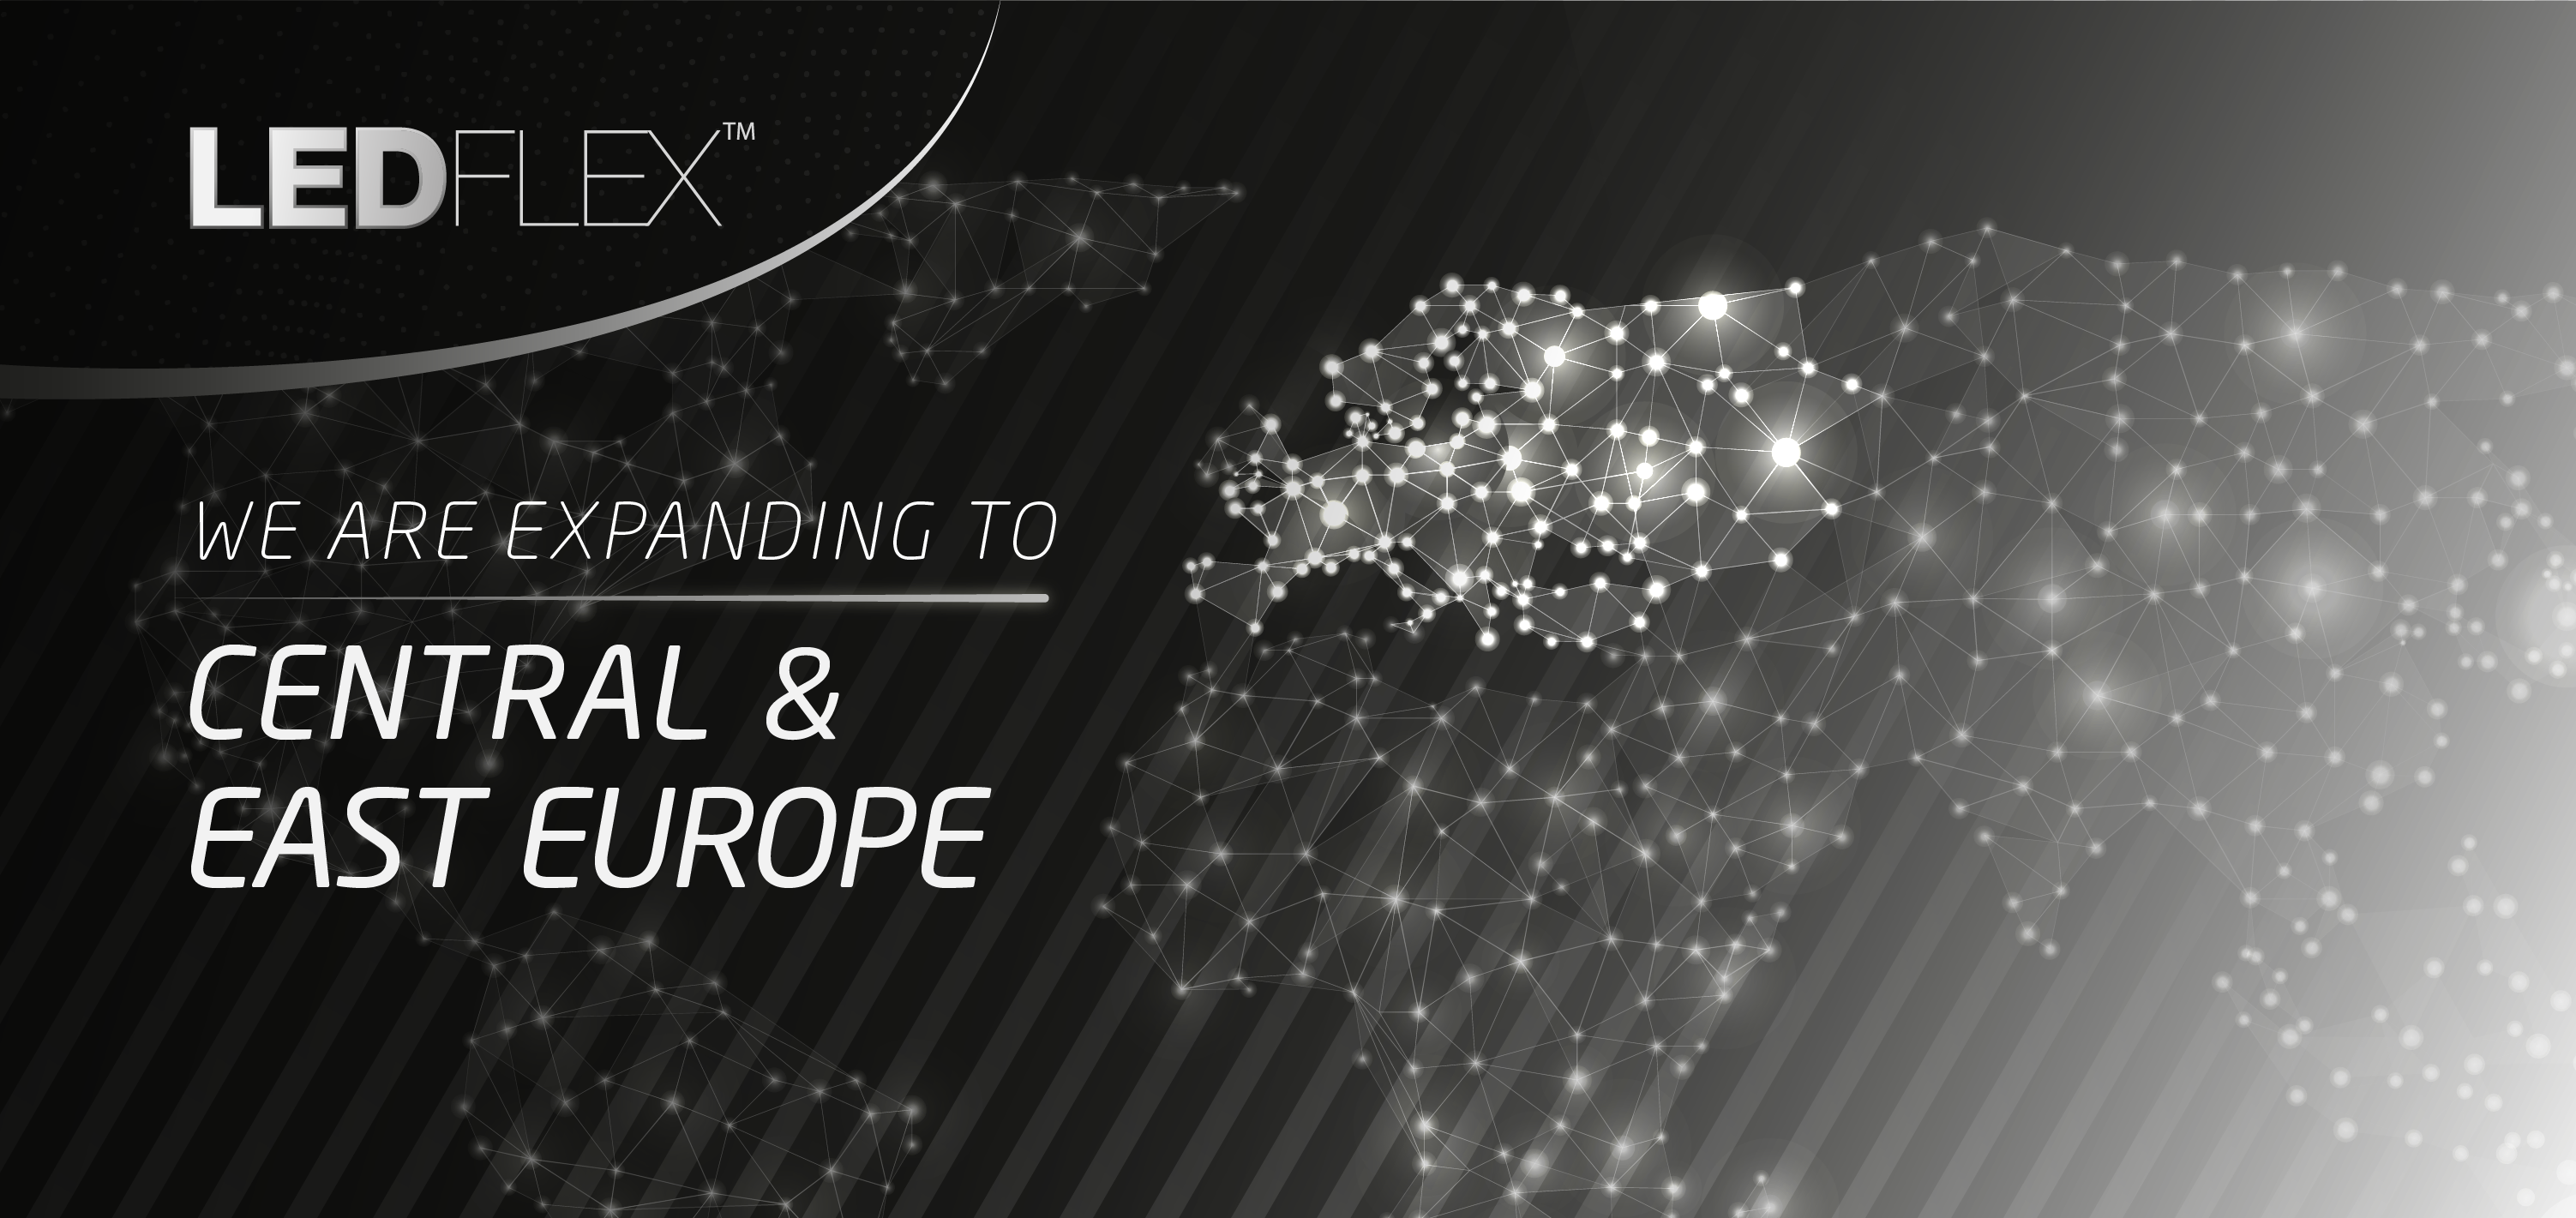 We are expanding to Central and East Europe